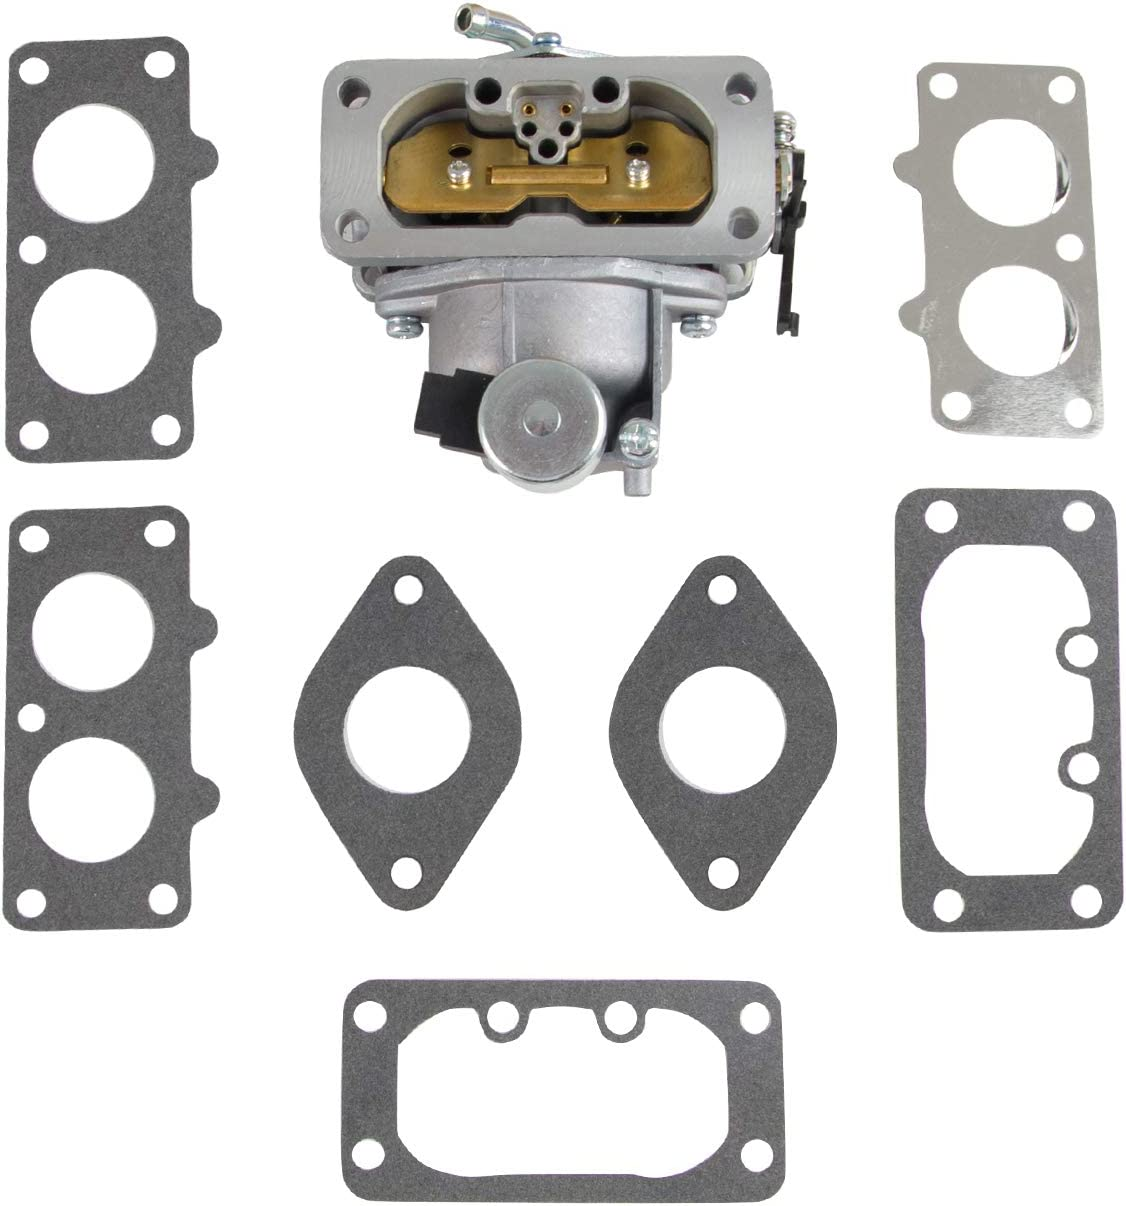 Replace 15004-0757 15004-0760 Carburetor//Carb with Gaskets Compatible with Kawasaki Nikki 22 HP FH721V FH641V FH661V FH601V FH680V FX850V Engine Replace 15004-0757